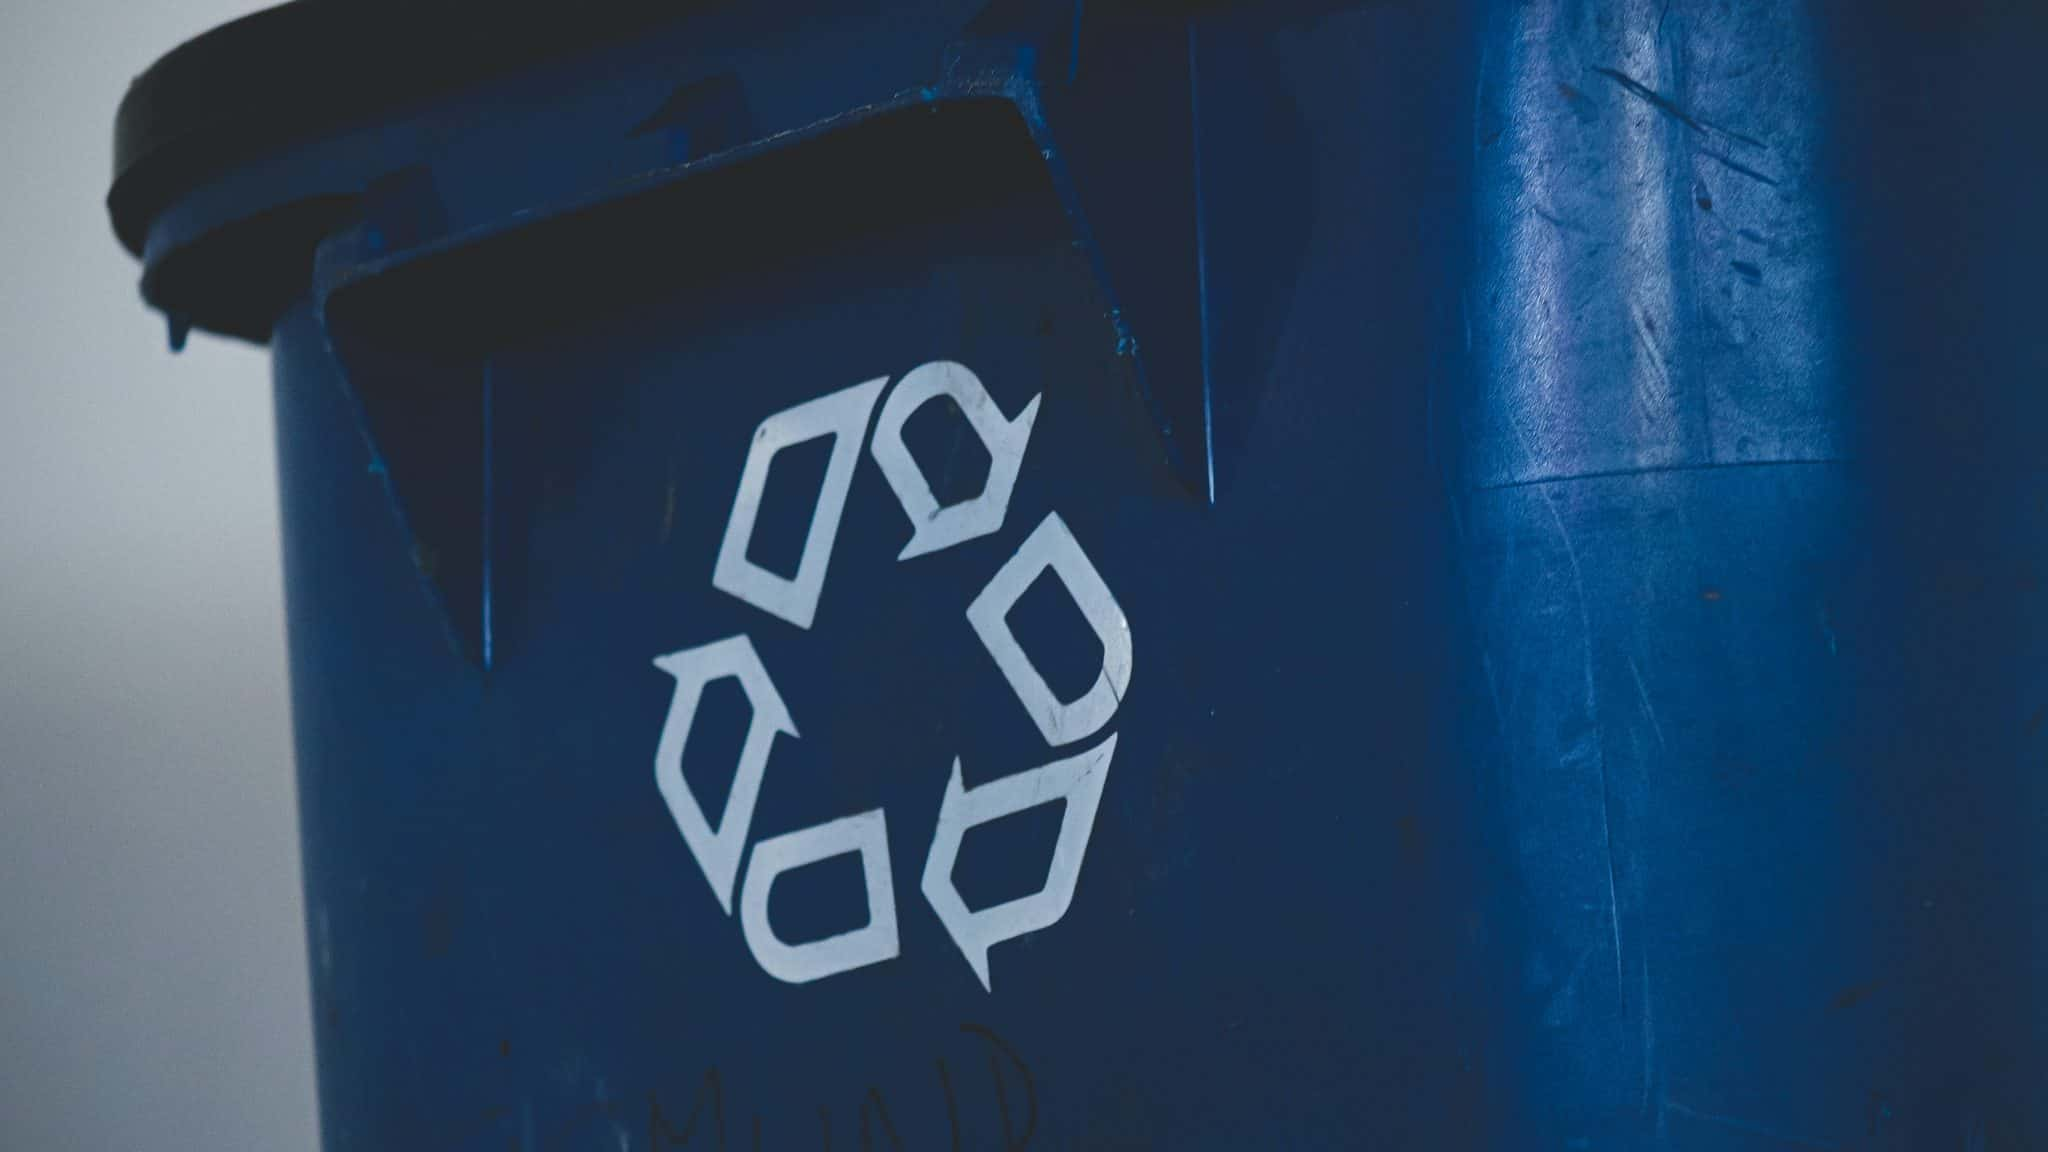 Blue recycling bin focused on recycle logo